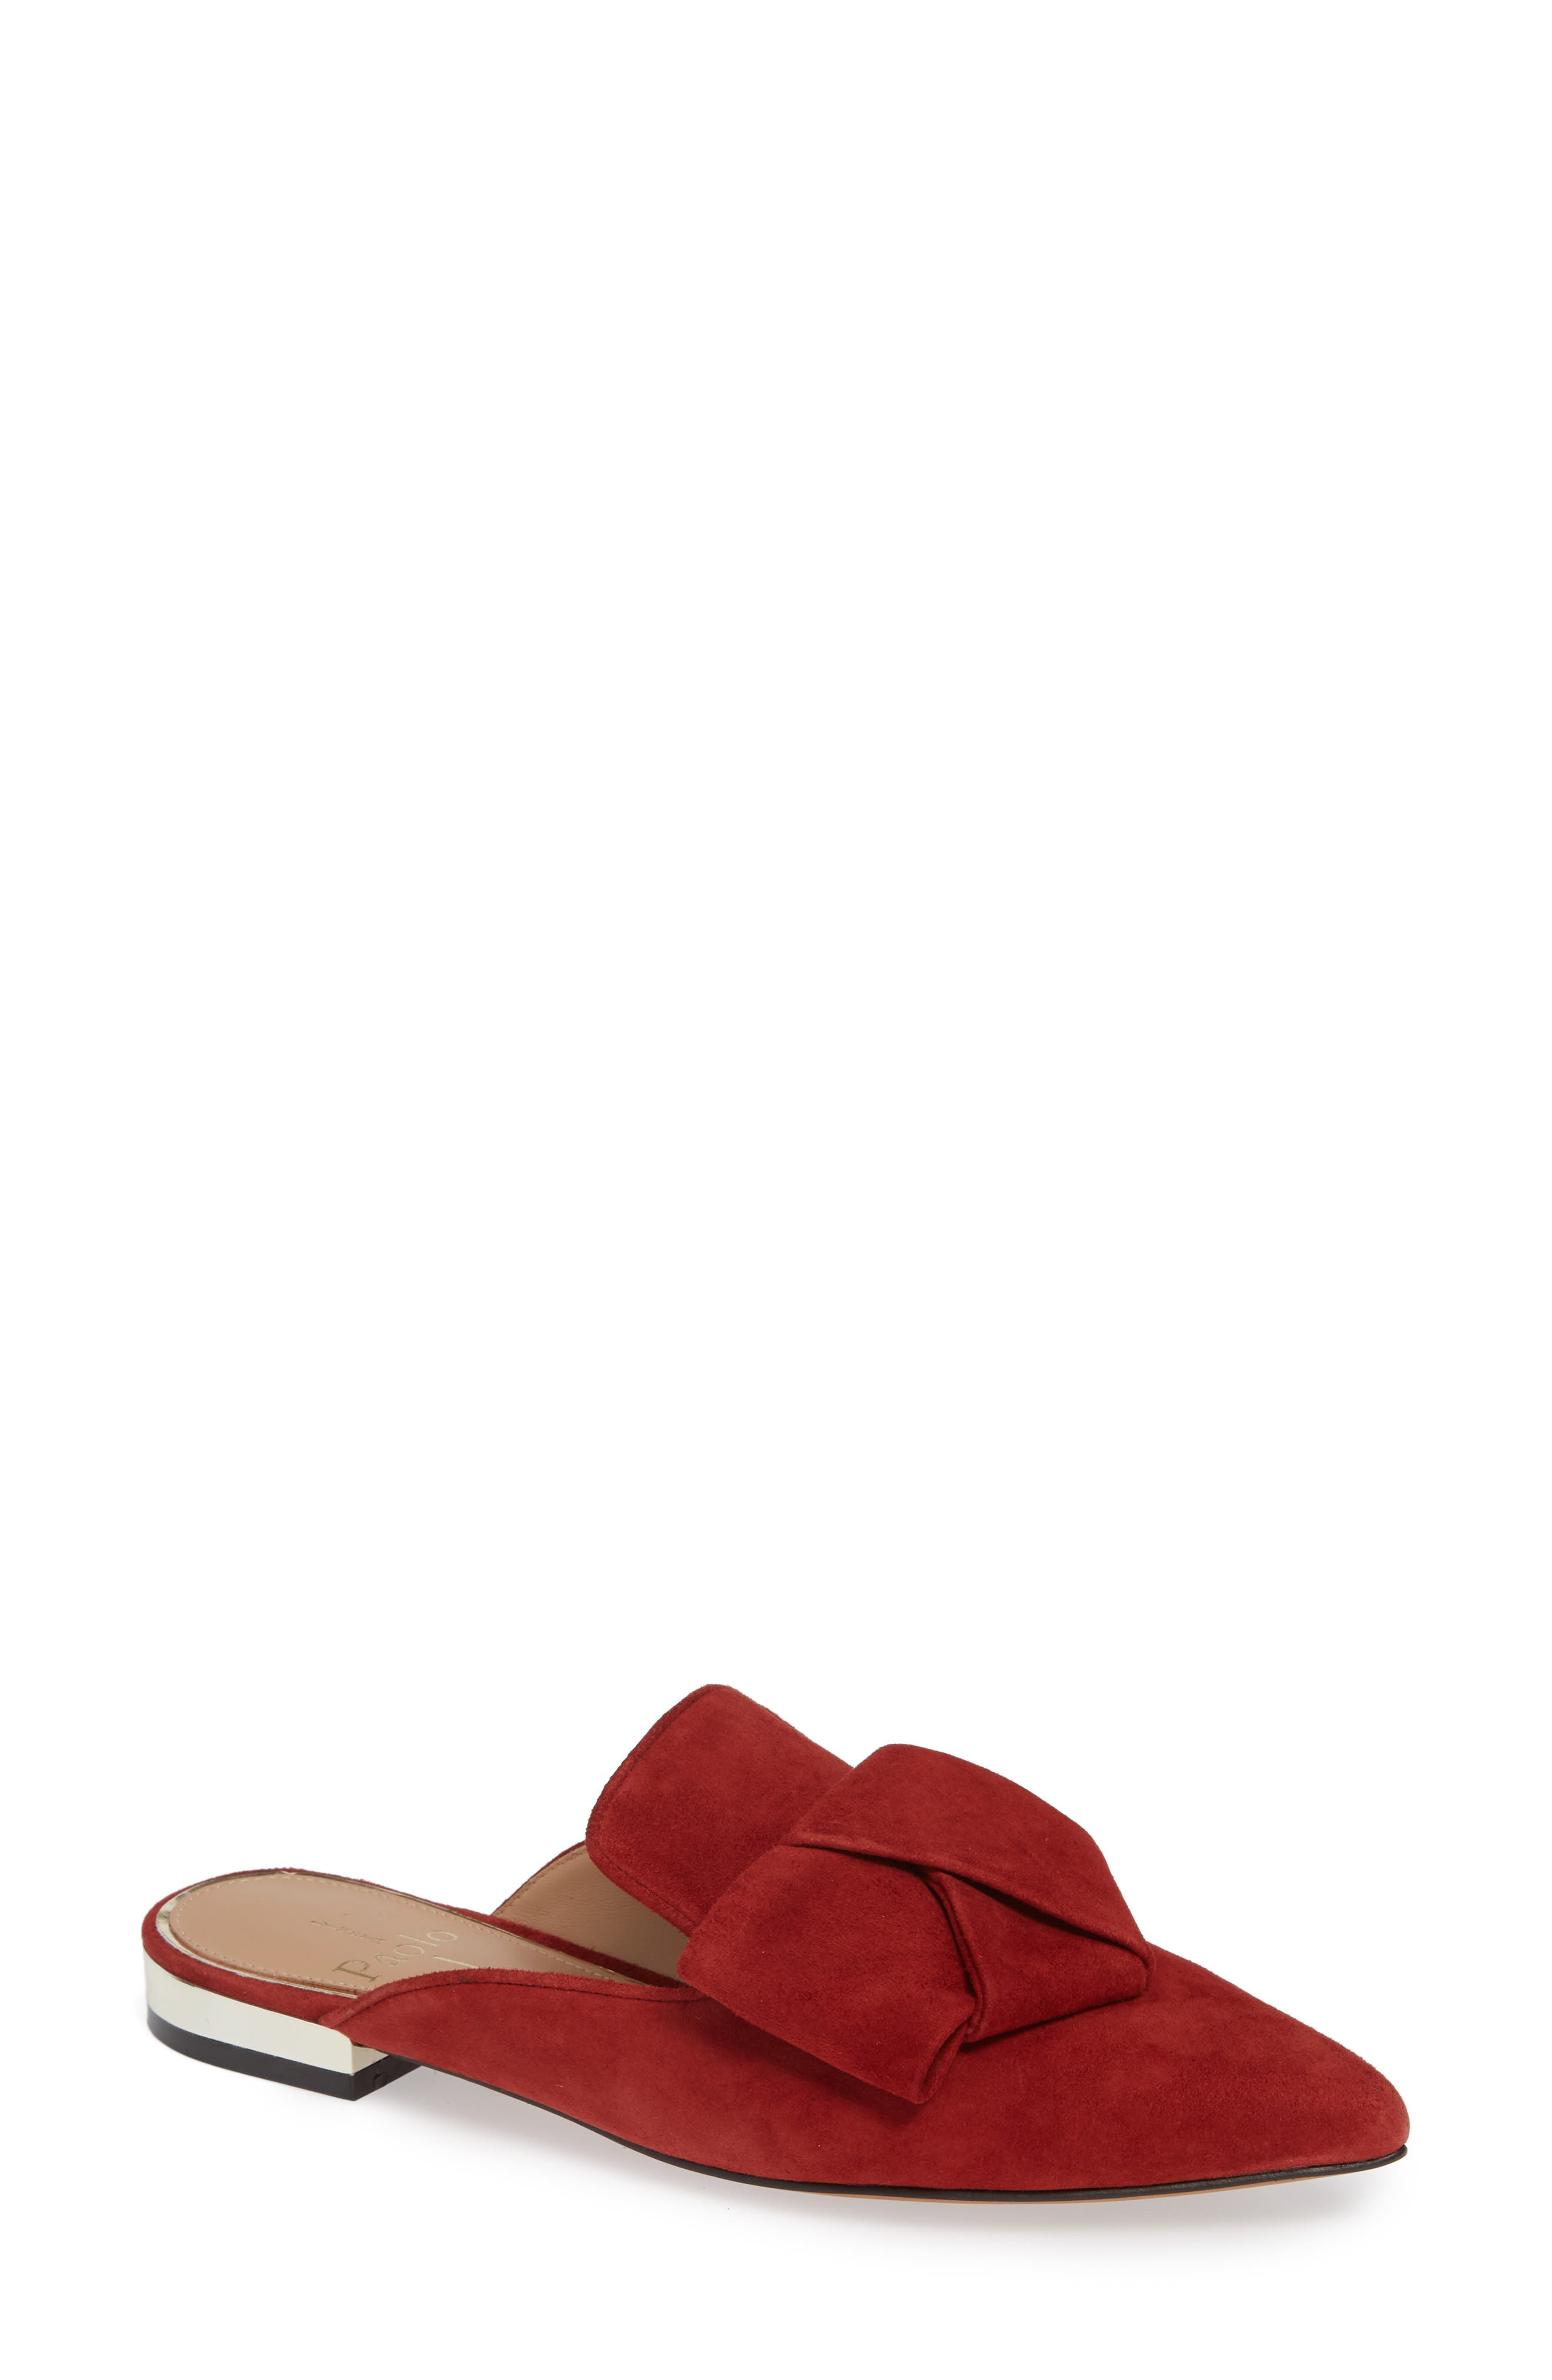 Linea Paolo Anya Bow Mule, Red